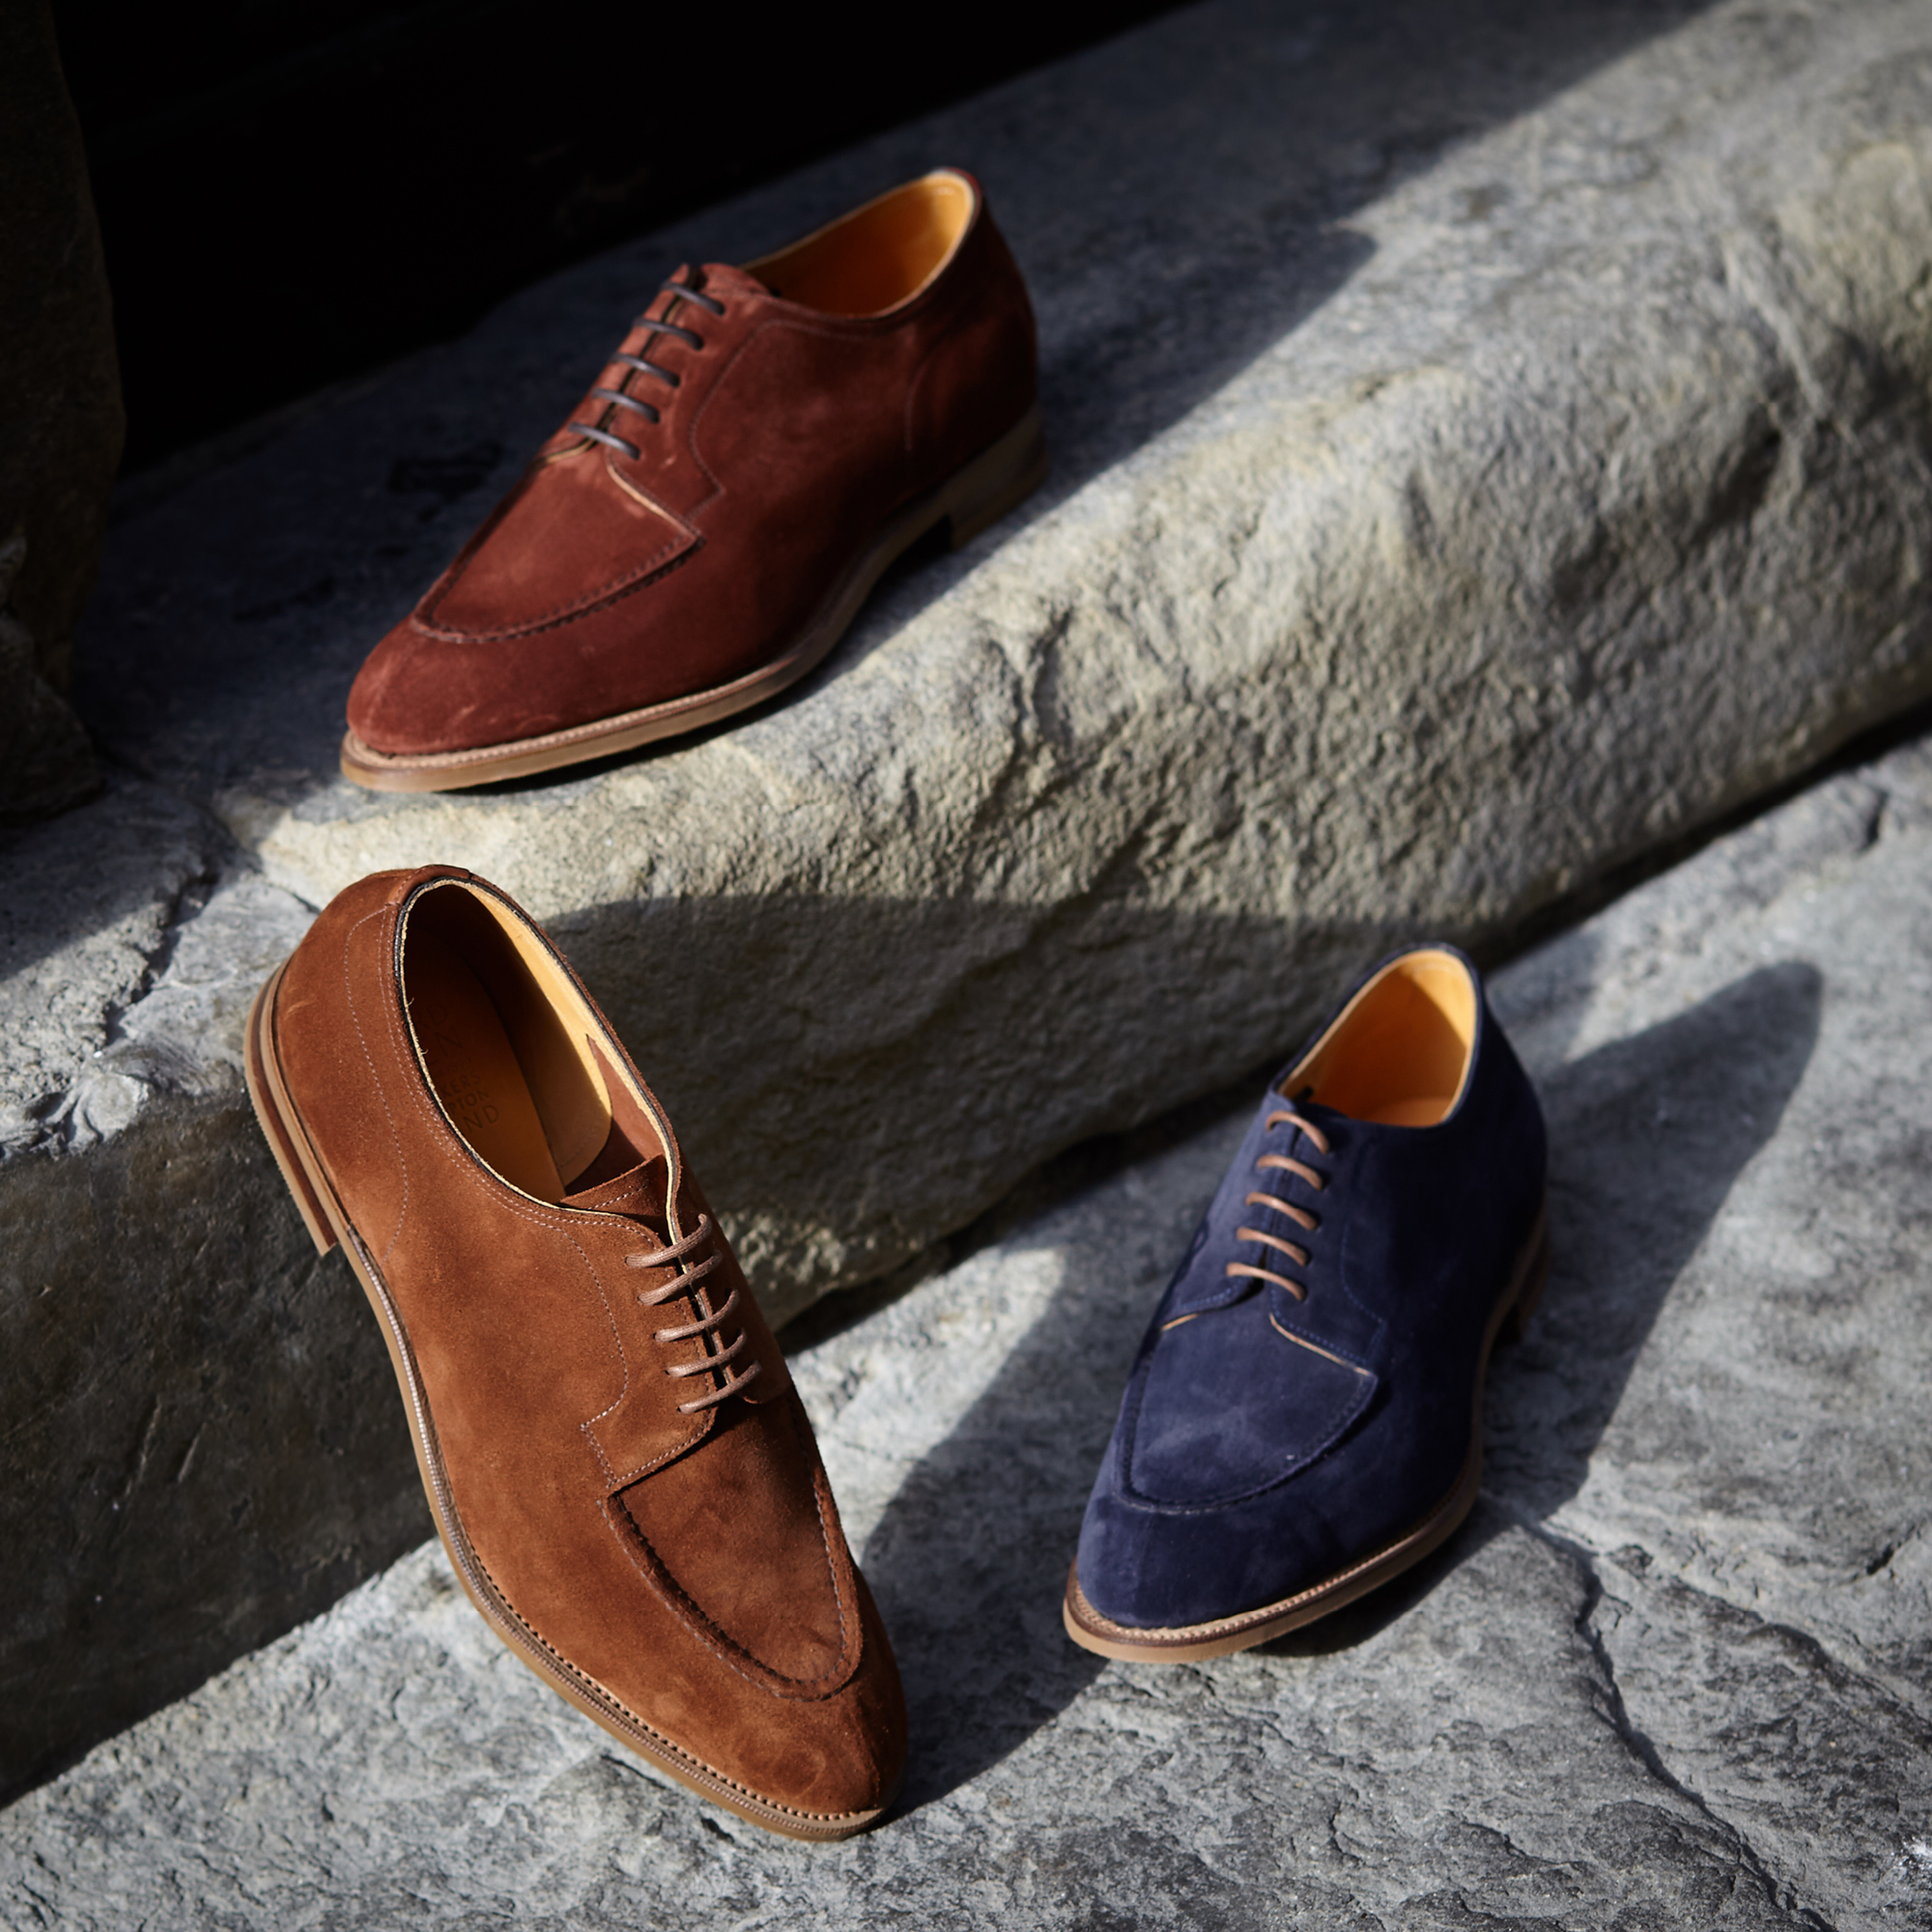 Unlined suede Dovers are the ideal spring-to-summer accessory